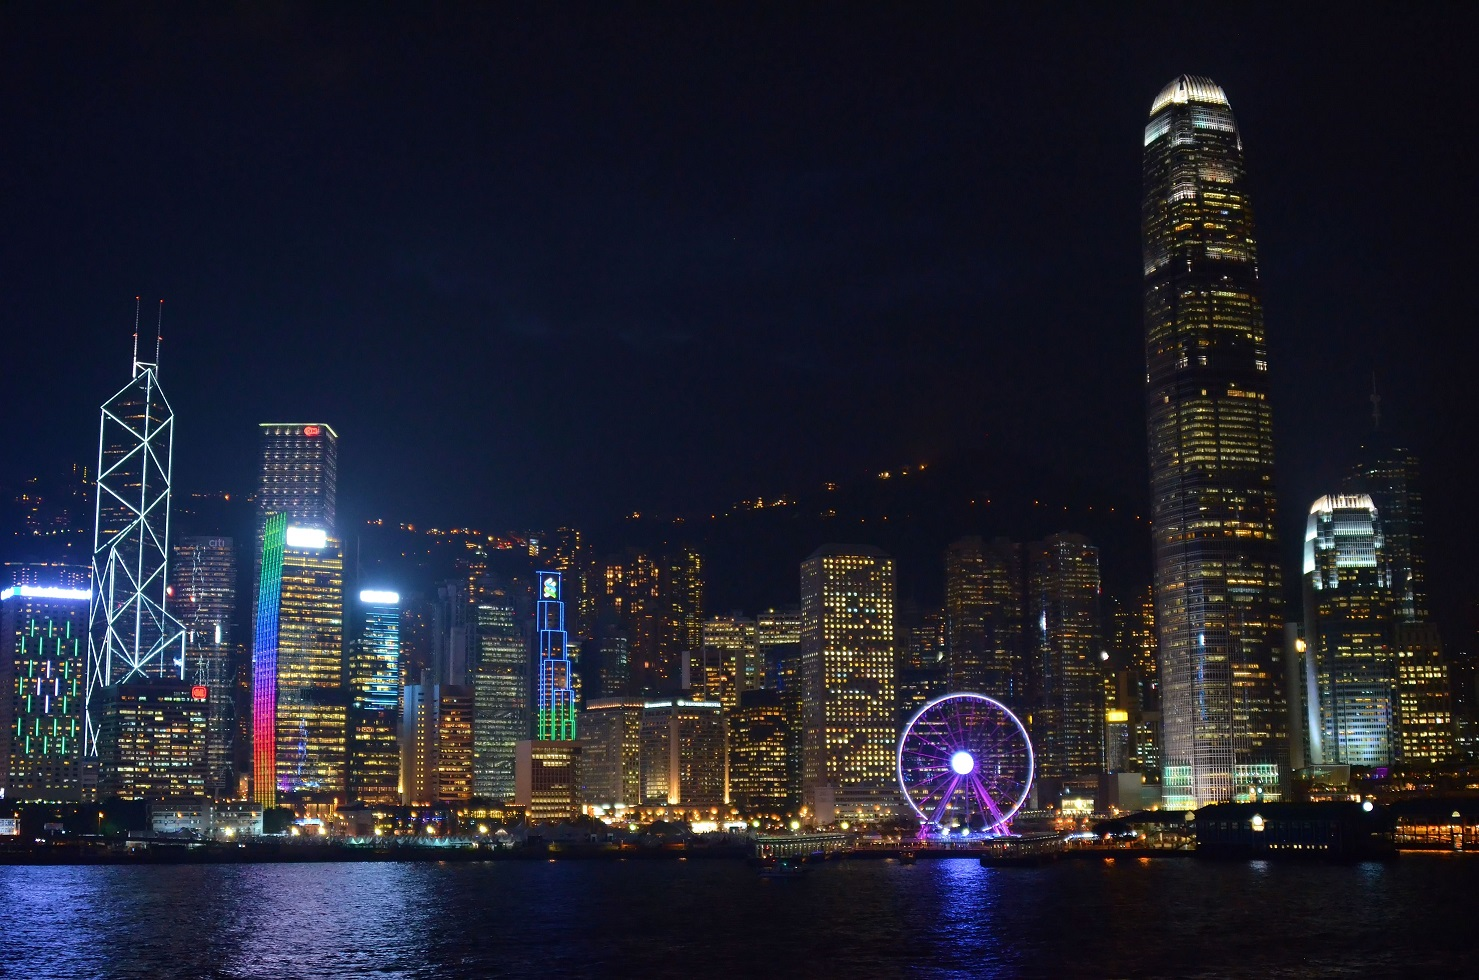 The skyline of Hong Kong Island is both colourful and innovative. It is spectacular!